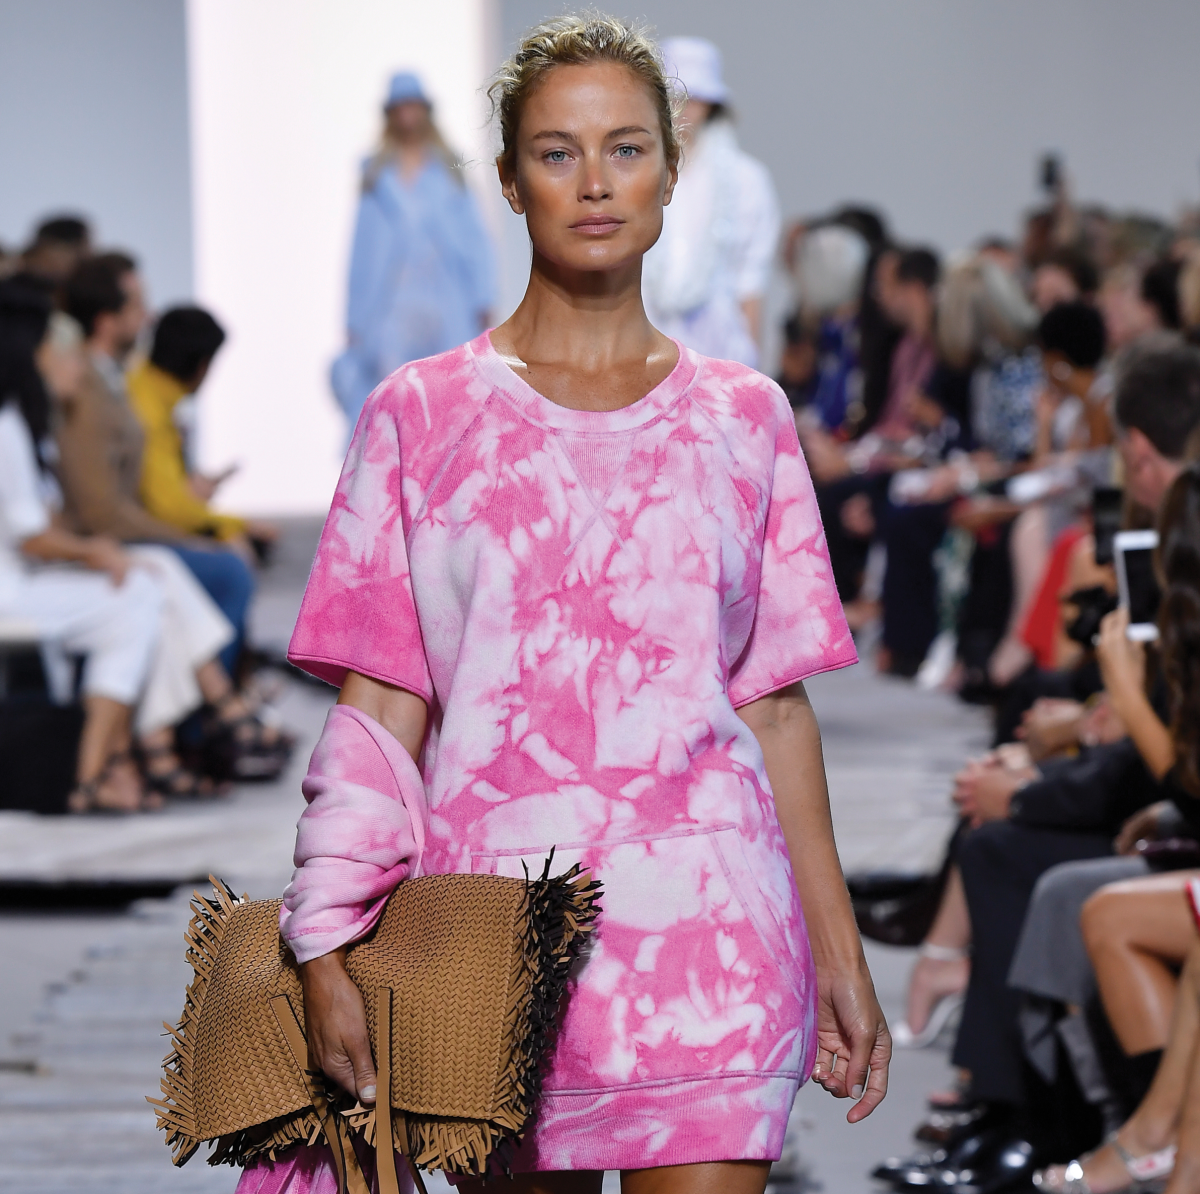 Michael Kors Collection look 1 spring 2018 New York Fashion Week